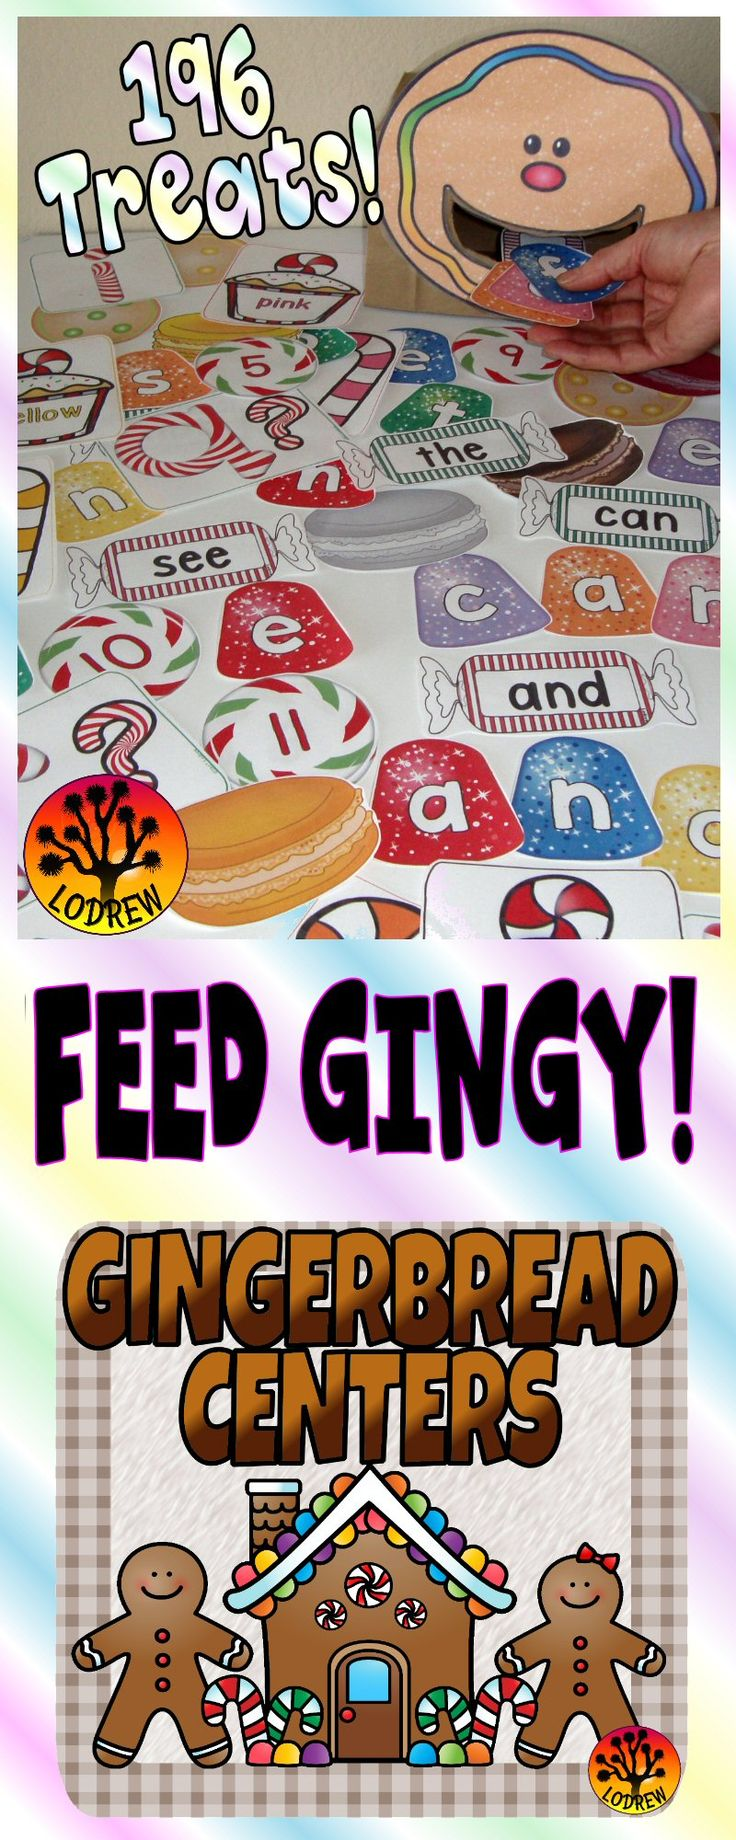 183 pages of gingerbread centers including literacy, math, fine motor skills, rhyming, cardinality, sight words, subitizing, sequencing, ten frames, counting, spelling, colors, visual discrimination, shapes, number sets, letter matching, and more. For kindergarten, preschool, SPED, child care, homeschool, or any early childhood setting.